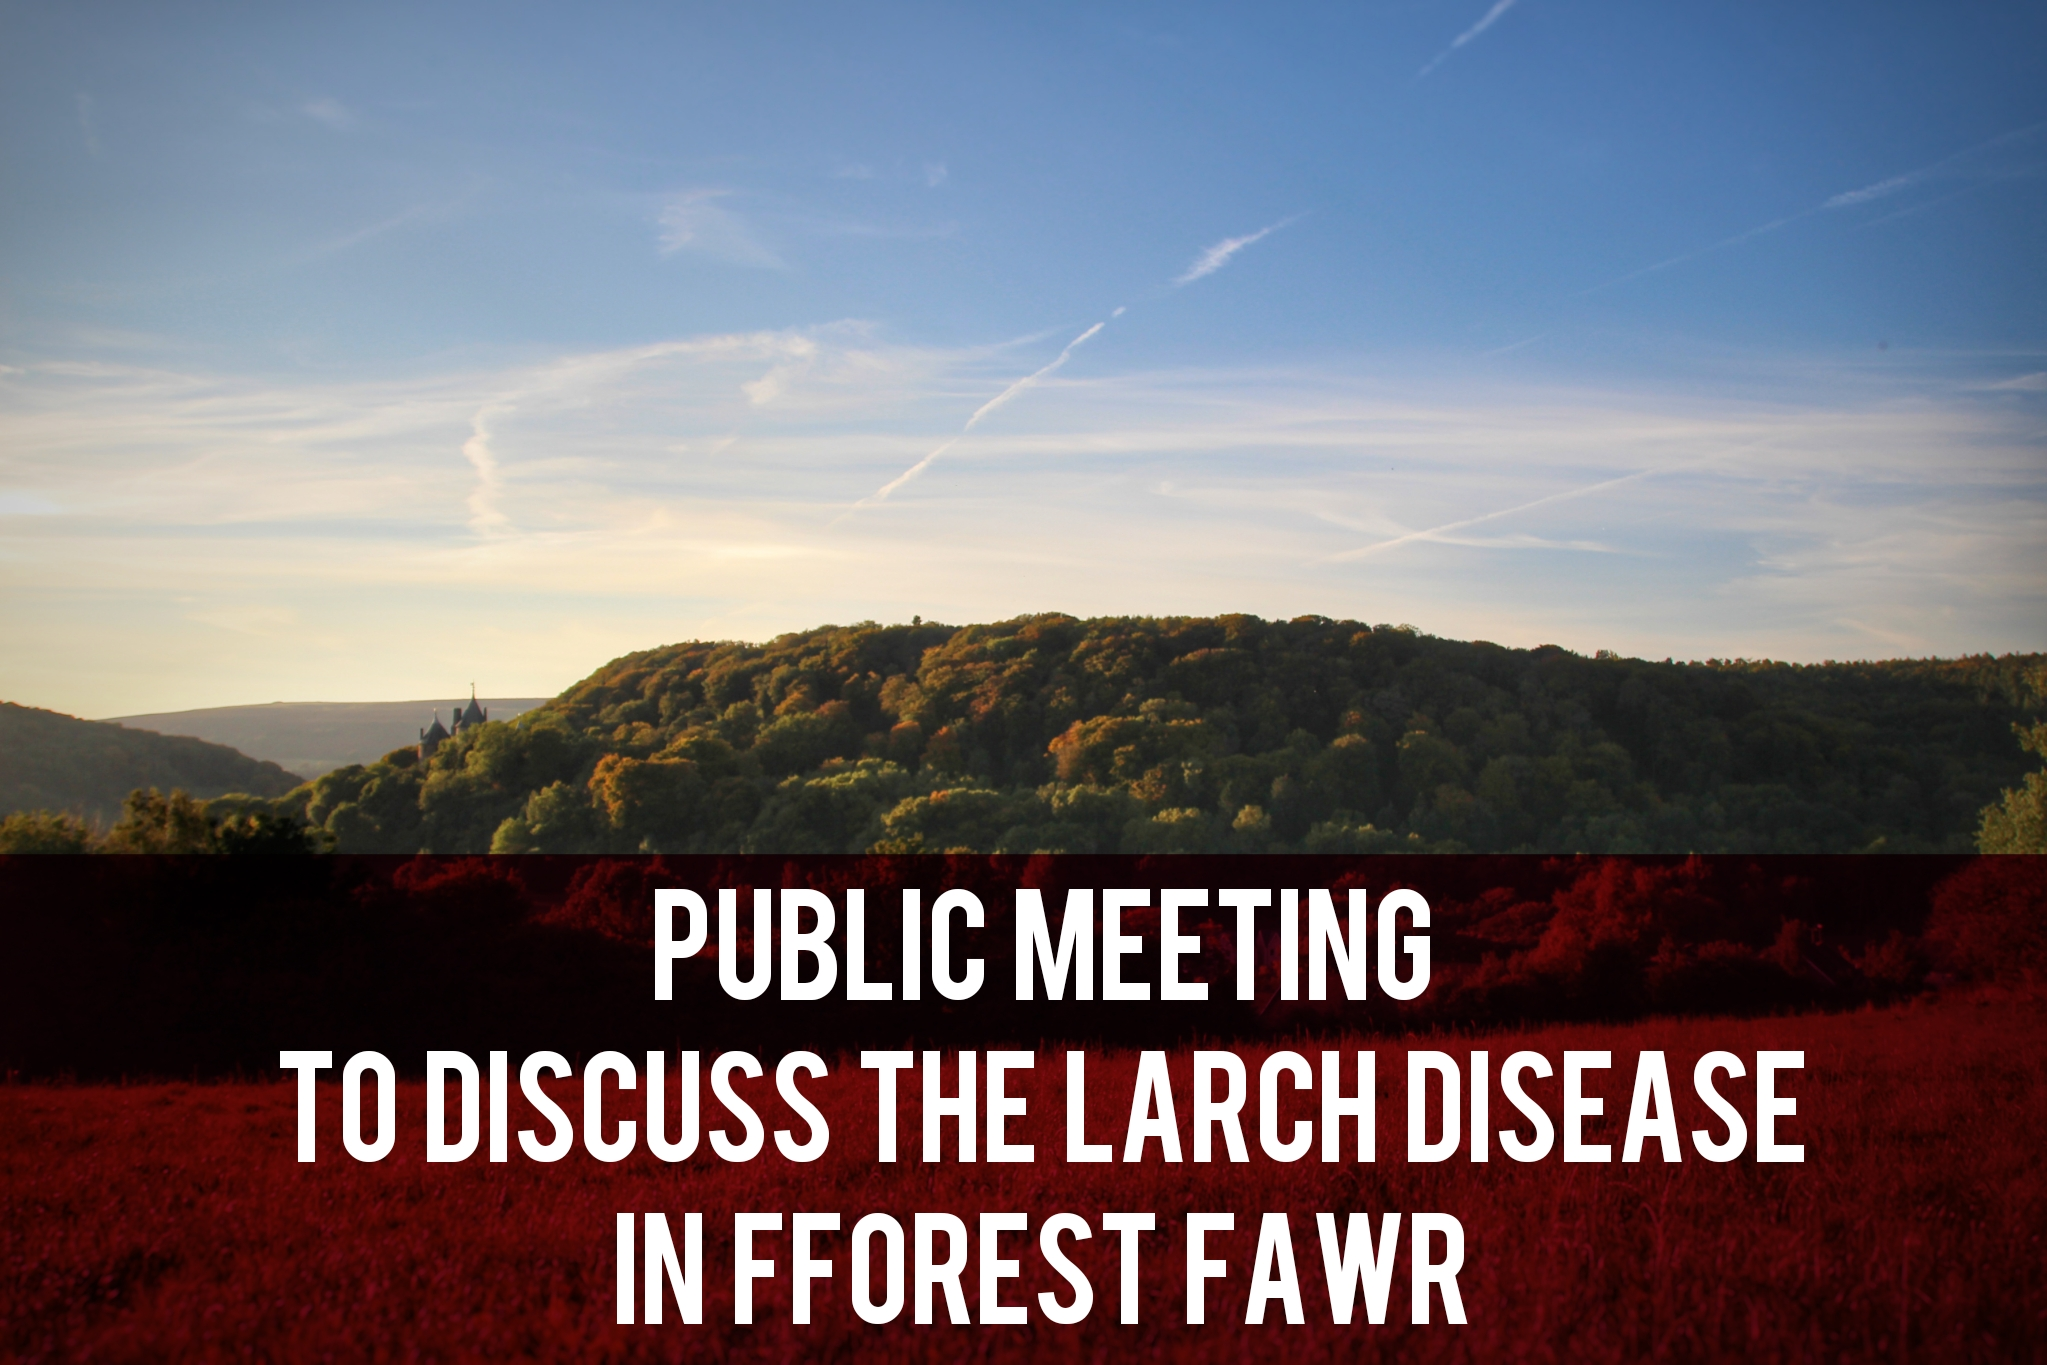 Public meeting to discuss larch disease in fforest fawr header